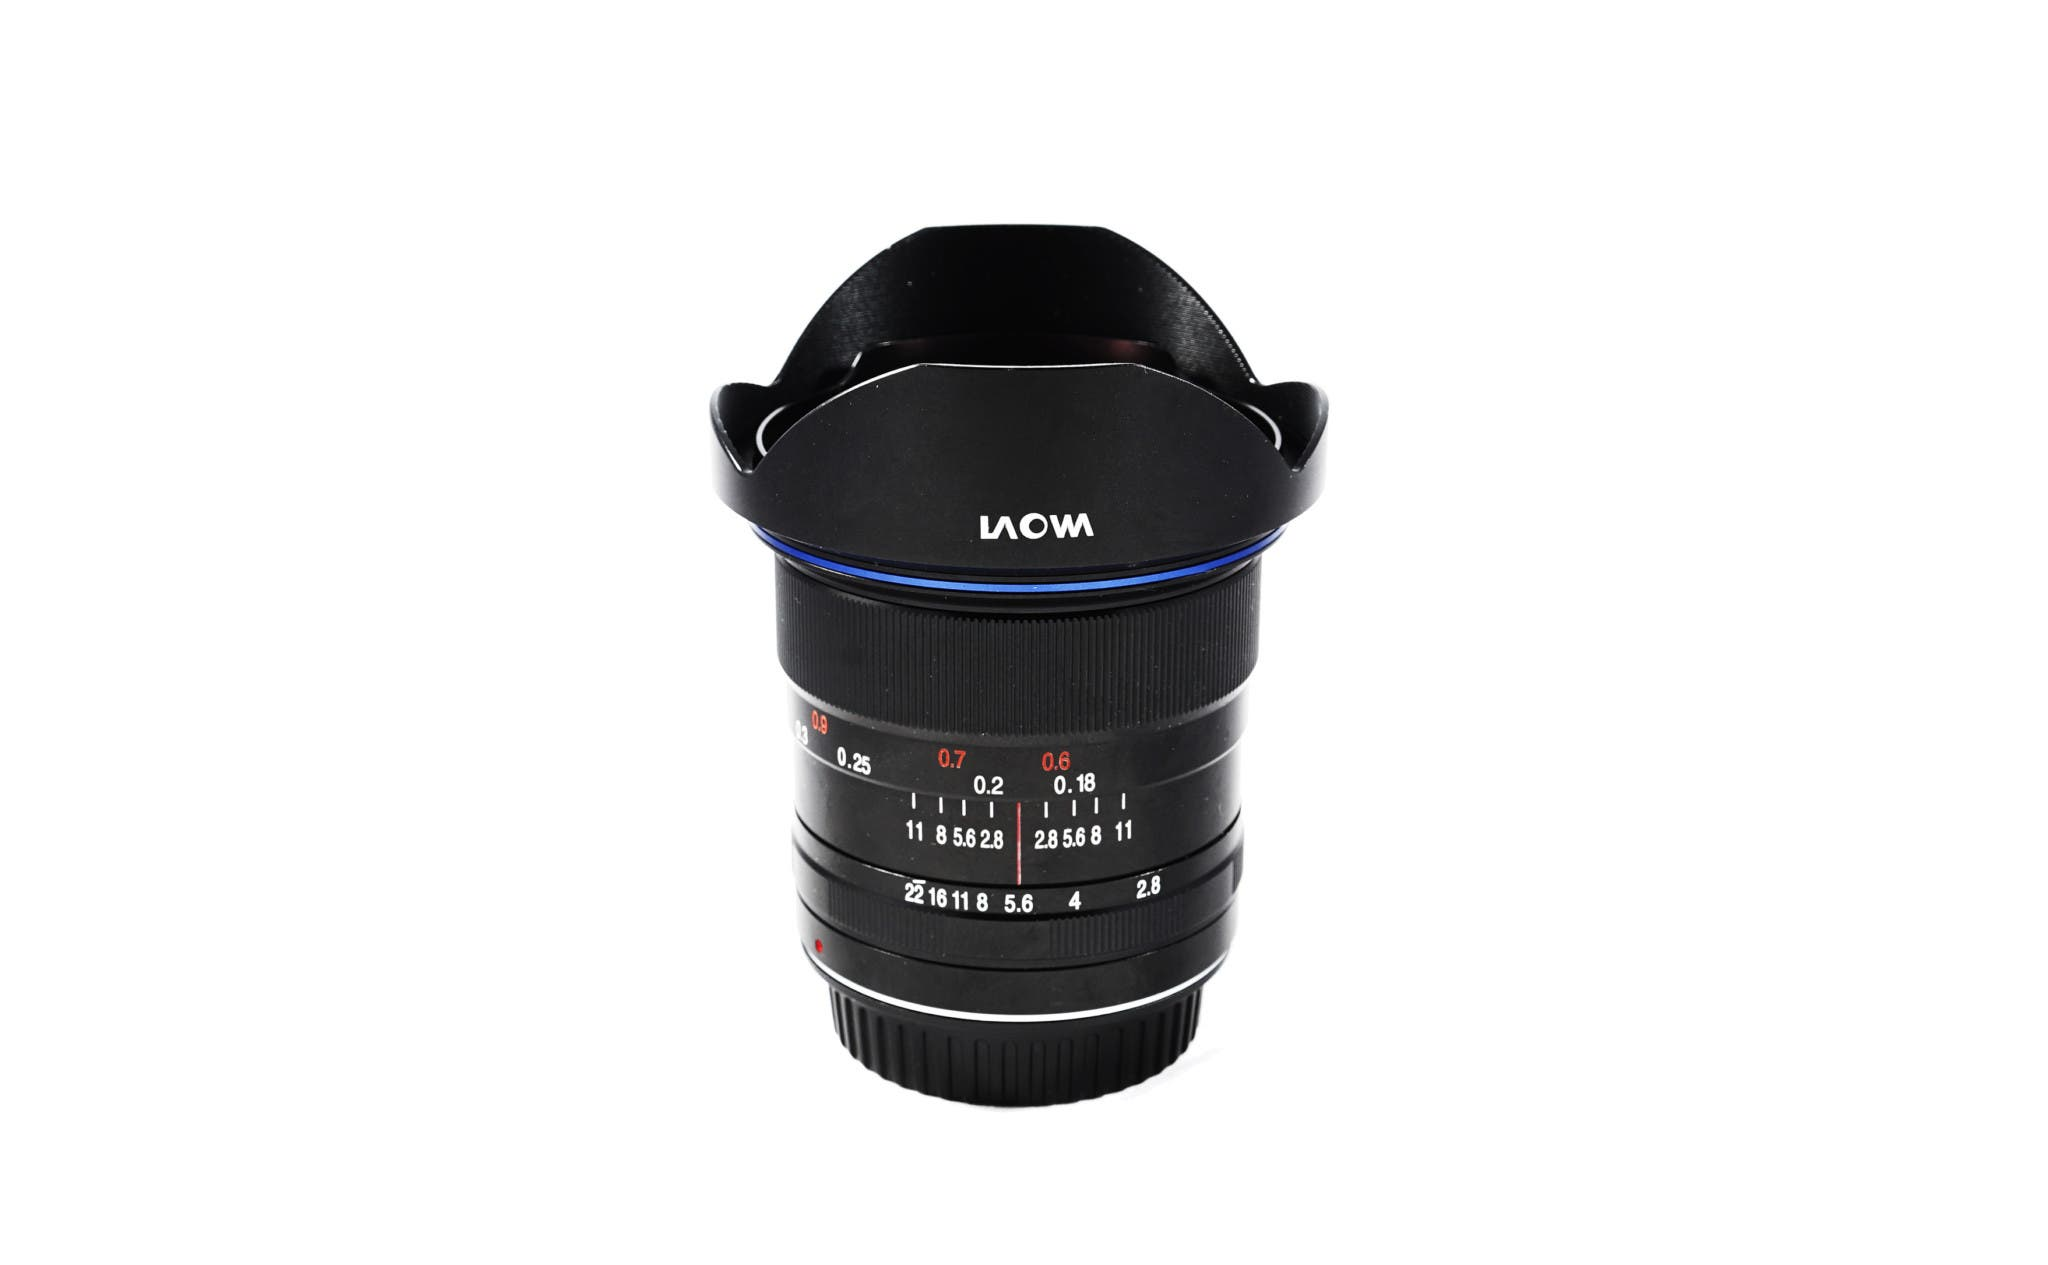 Venus Optics' New Laowa 12mm f2.8 Claims Almost No Distortion